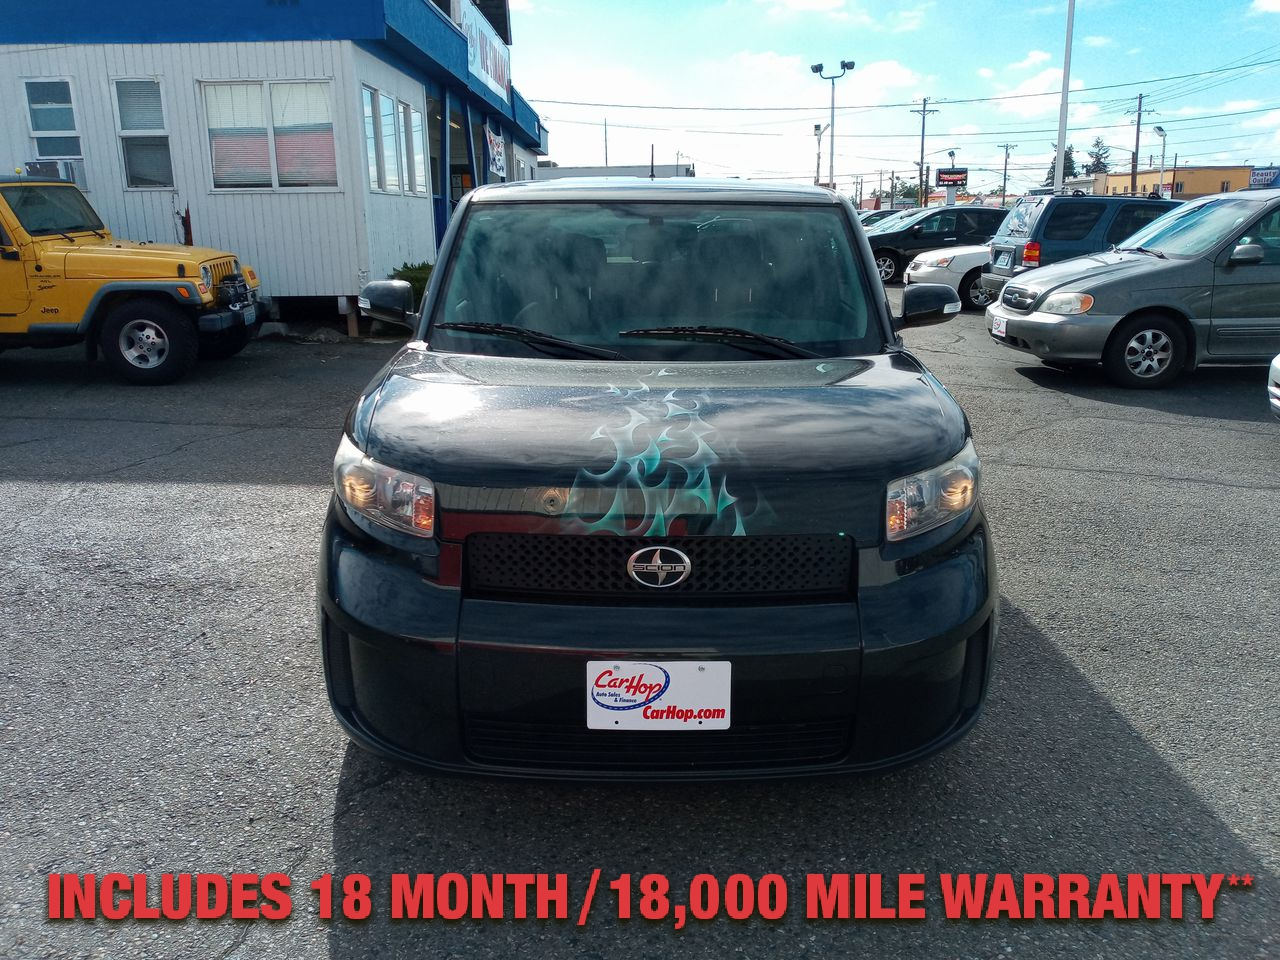 Pre-Owned 2008 SCION XB Hatchback